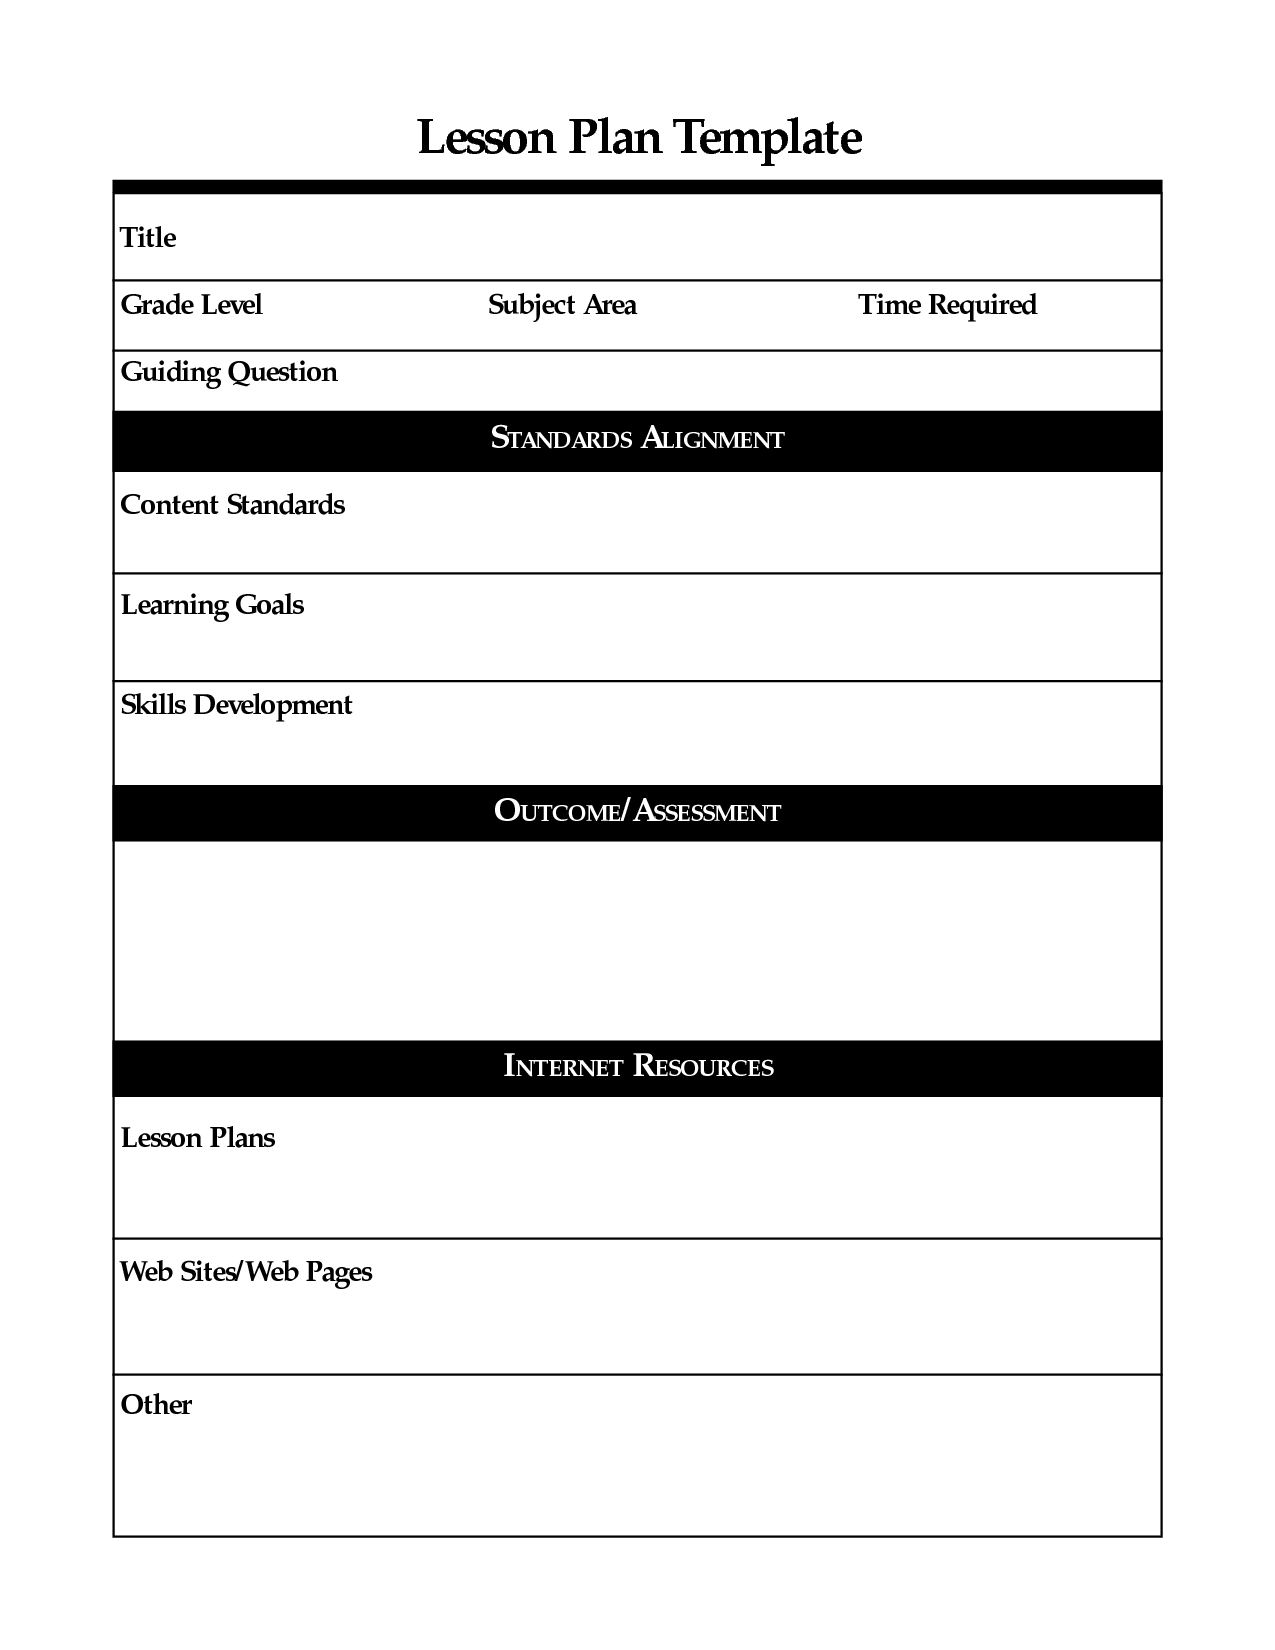 Printable Lesson Plan Template, Free To Download regarding Basic Lesson Plan Template Printable